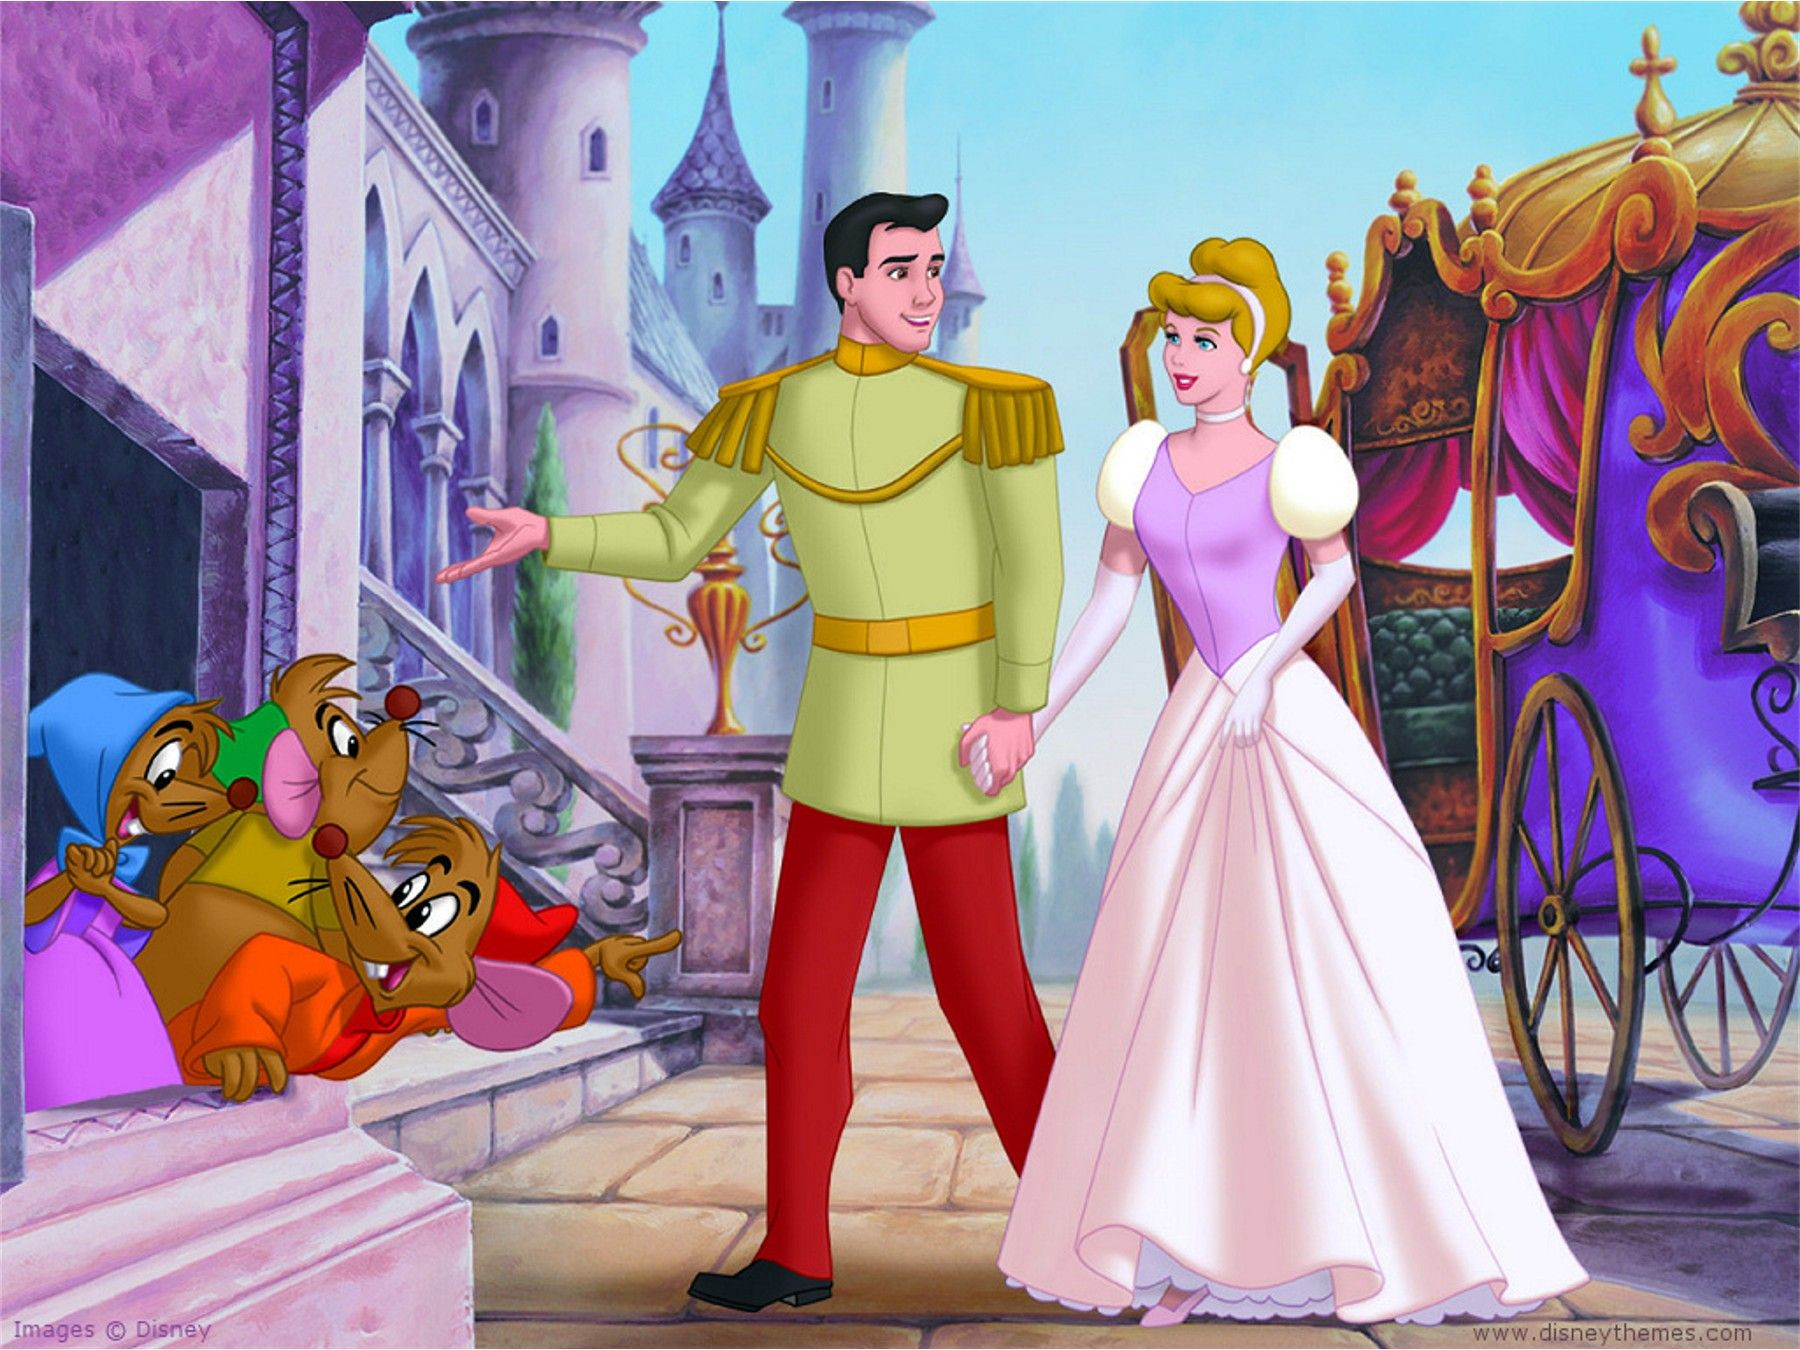 1955 Cinderella the movie came out. It was the first time I went to the movies.